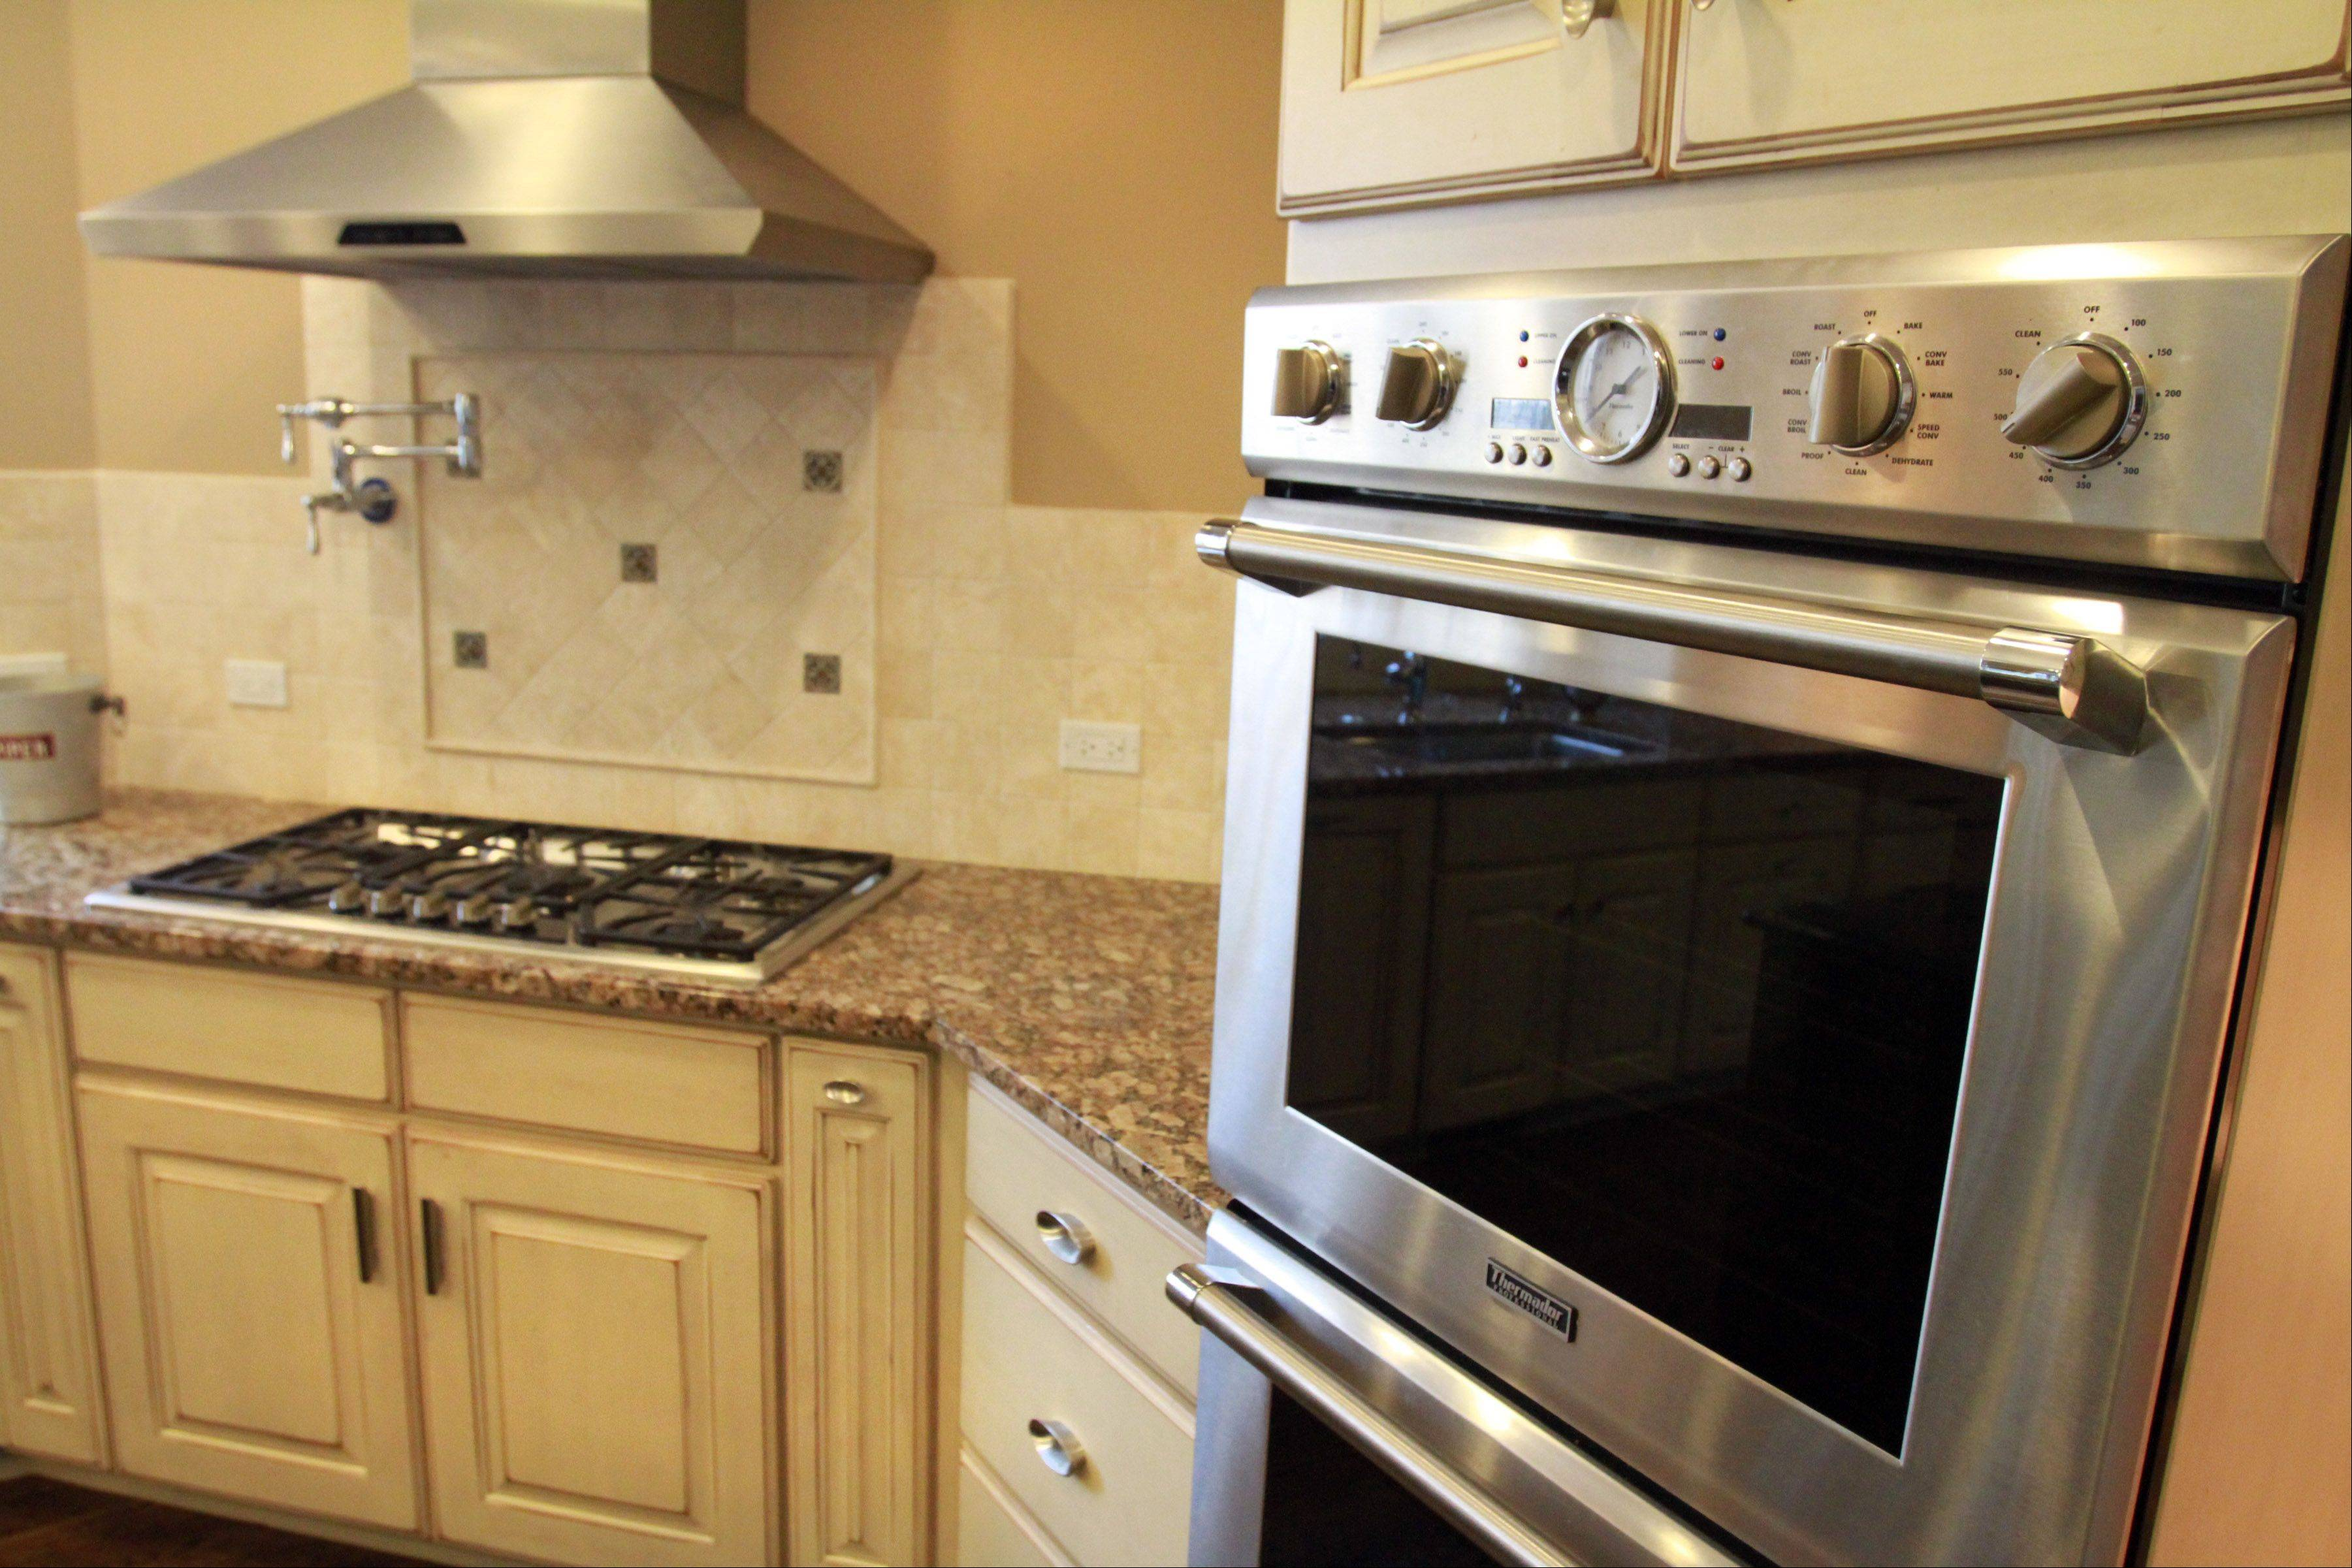 A double oven helps the Fretzin family keep a kosher kitchen, designed by architect David Wytmar, partner in Groundwork Ltd. of Buffalo Grove.